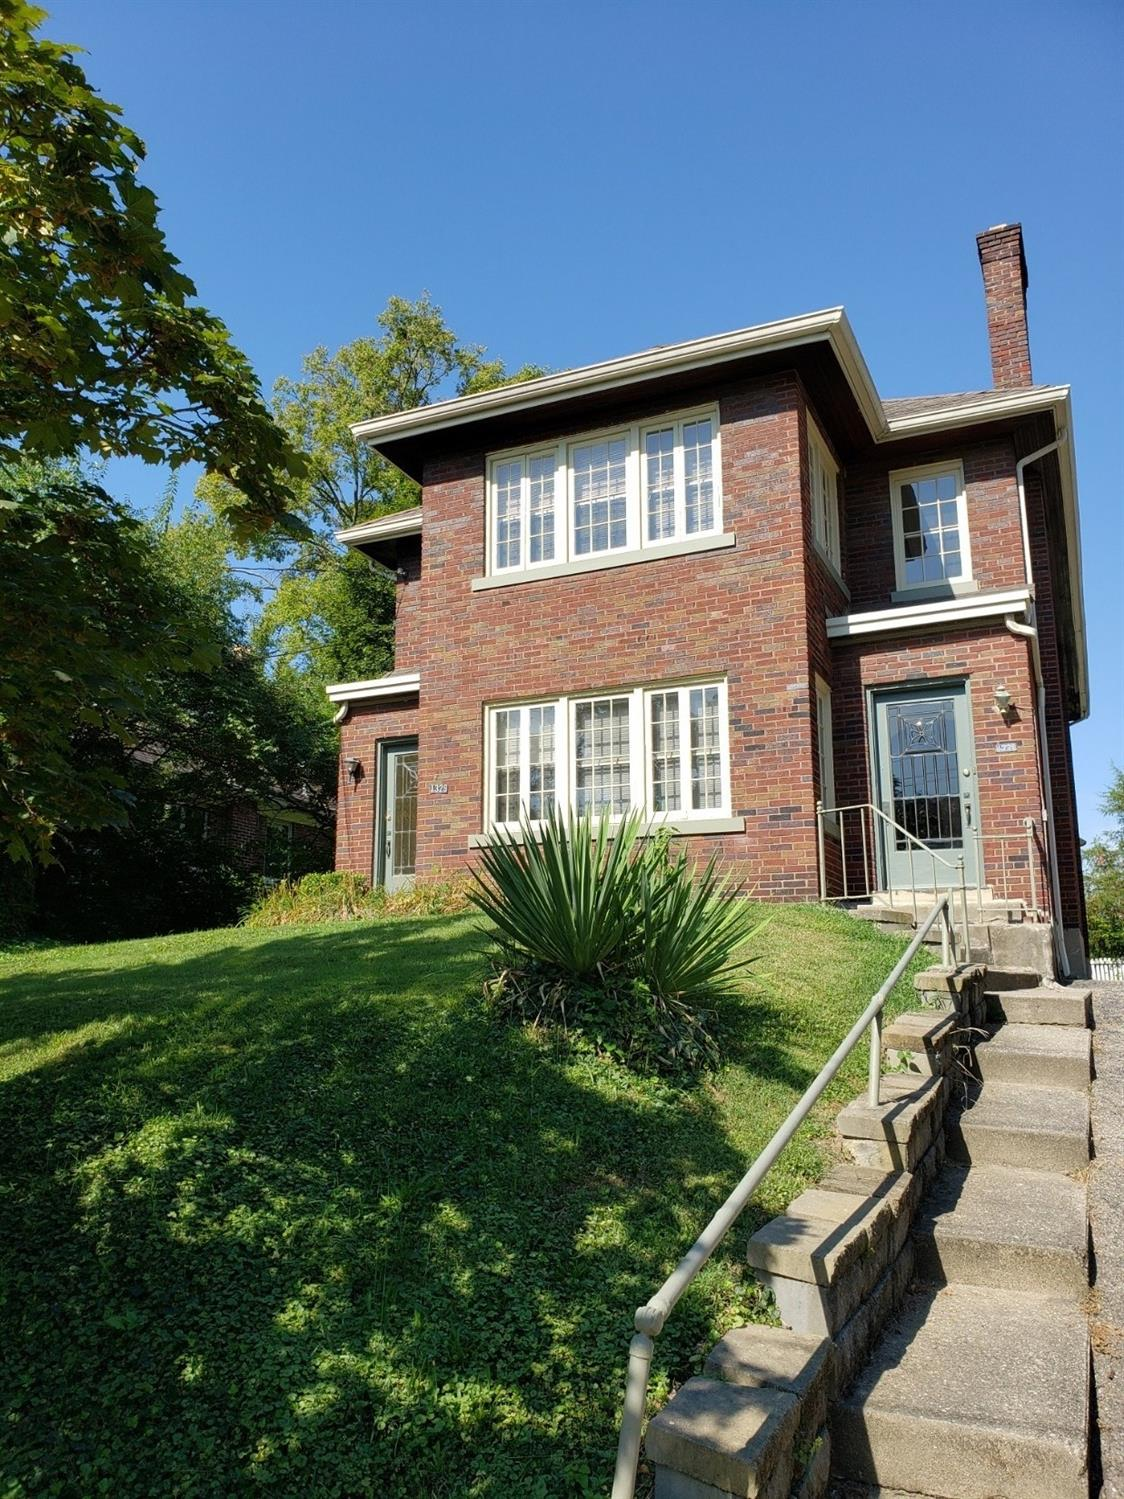 Property for sale at 1329 Paxton Avenue, Cincinnati,  Ohio 45208